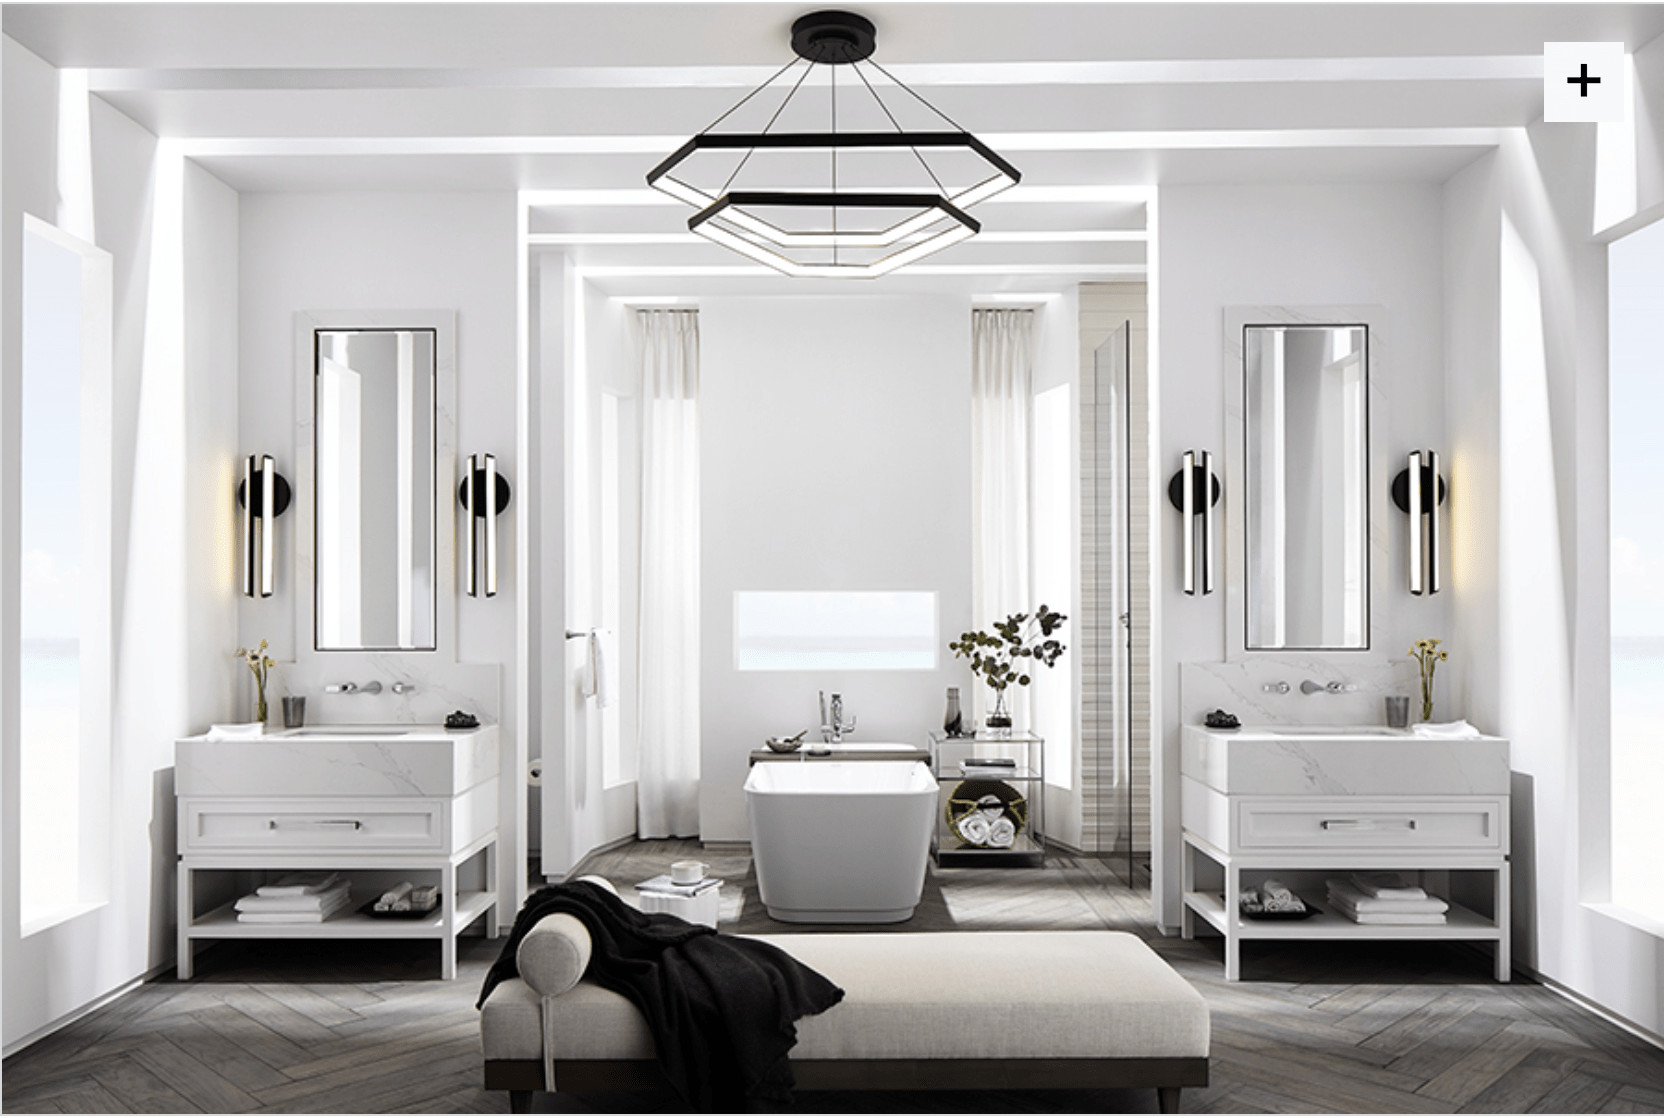 A stunning bathroom designed by Laura Muller of www.fourpointdesignbuild.com for luxury bathroom brand, DXV